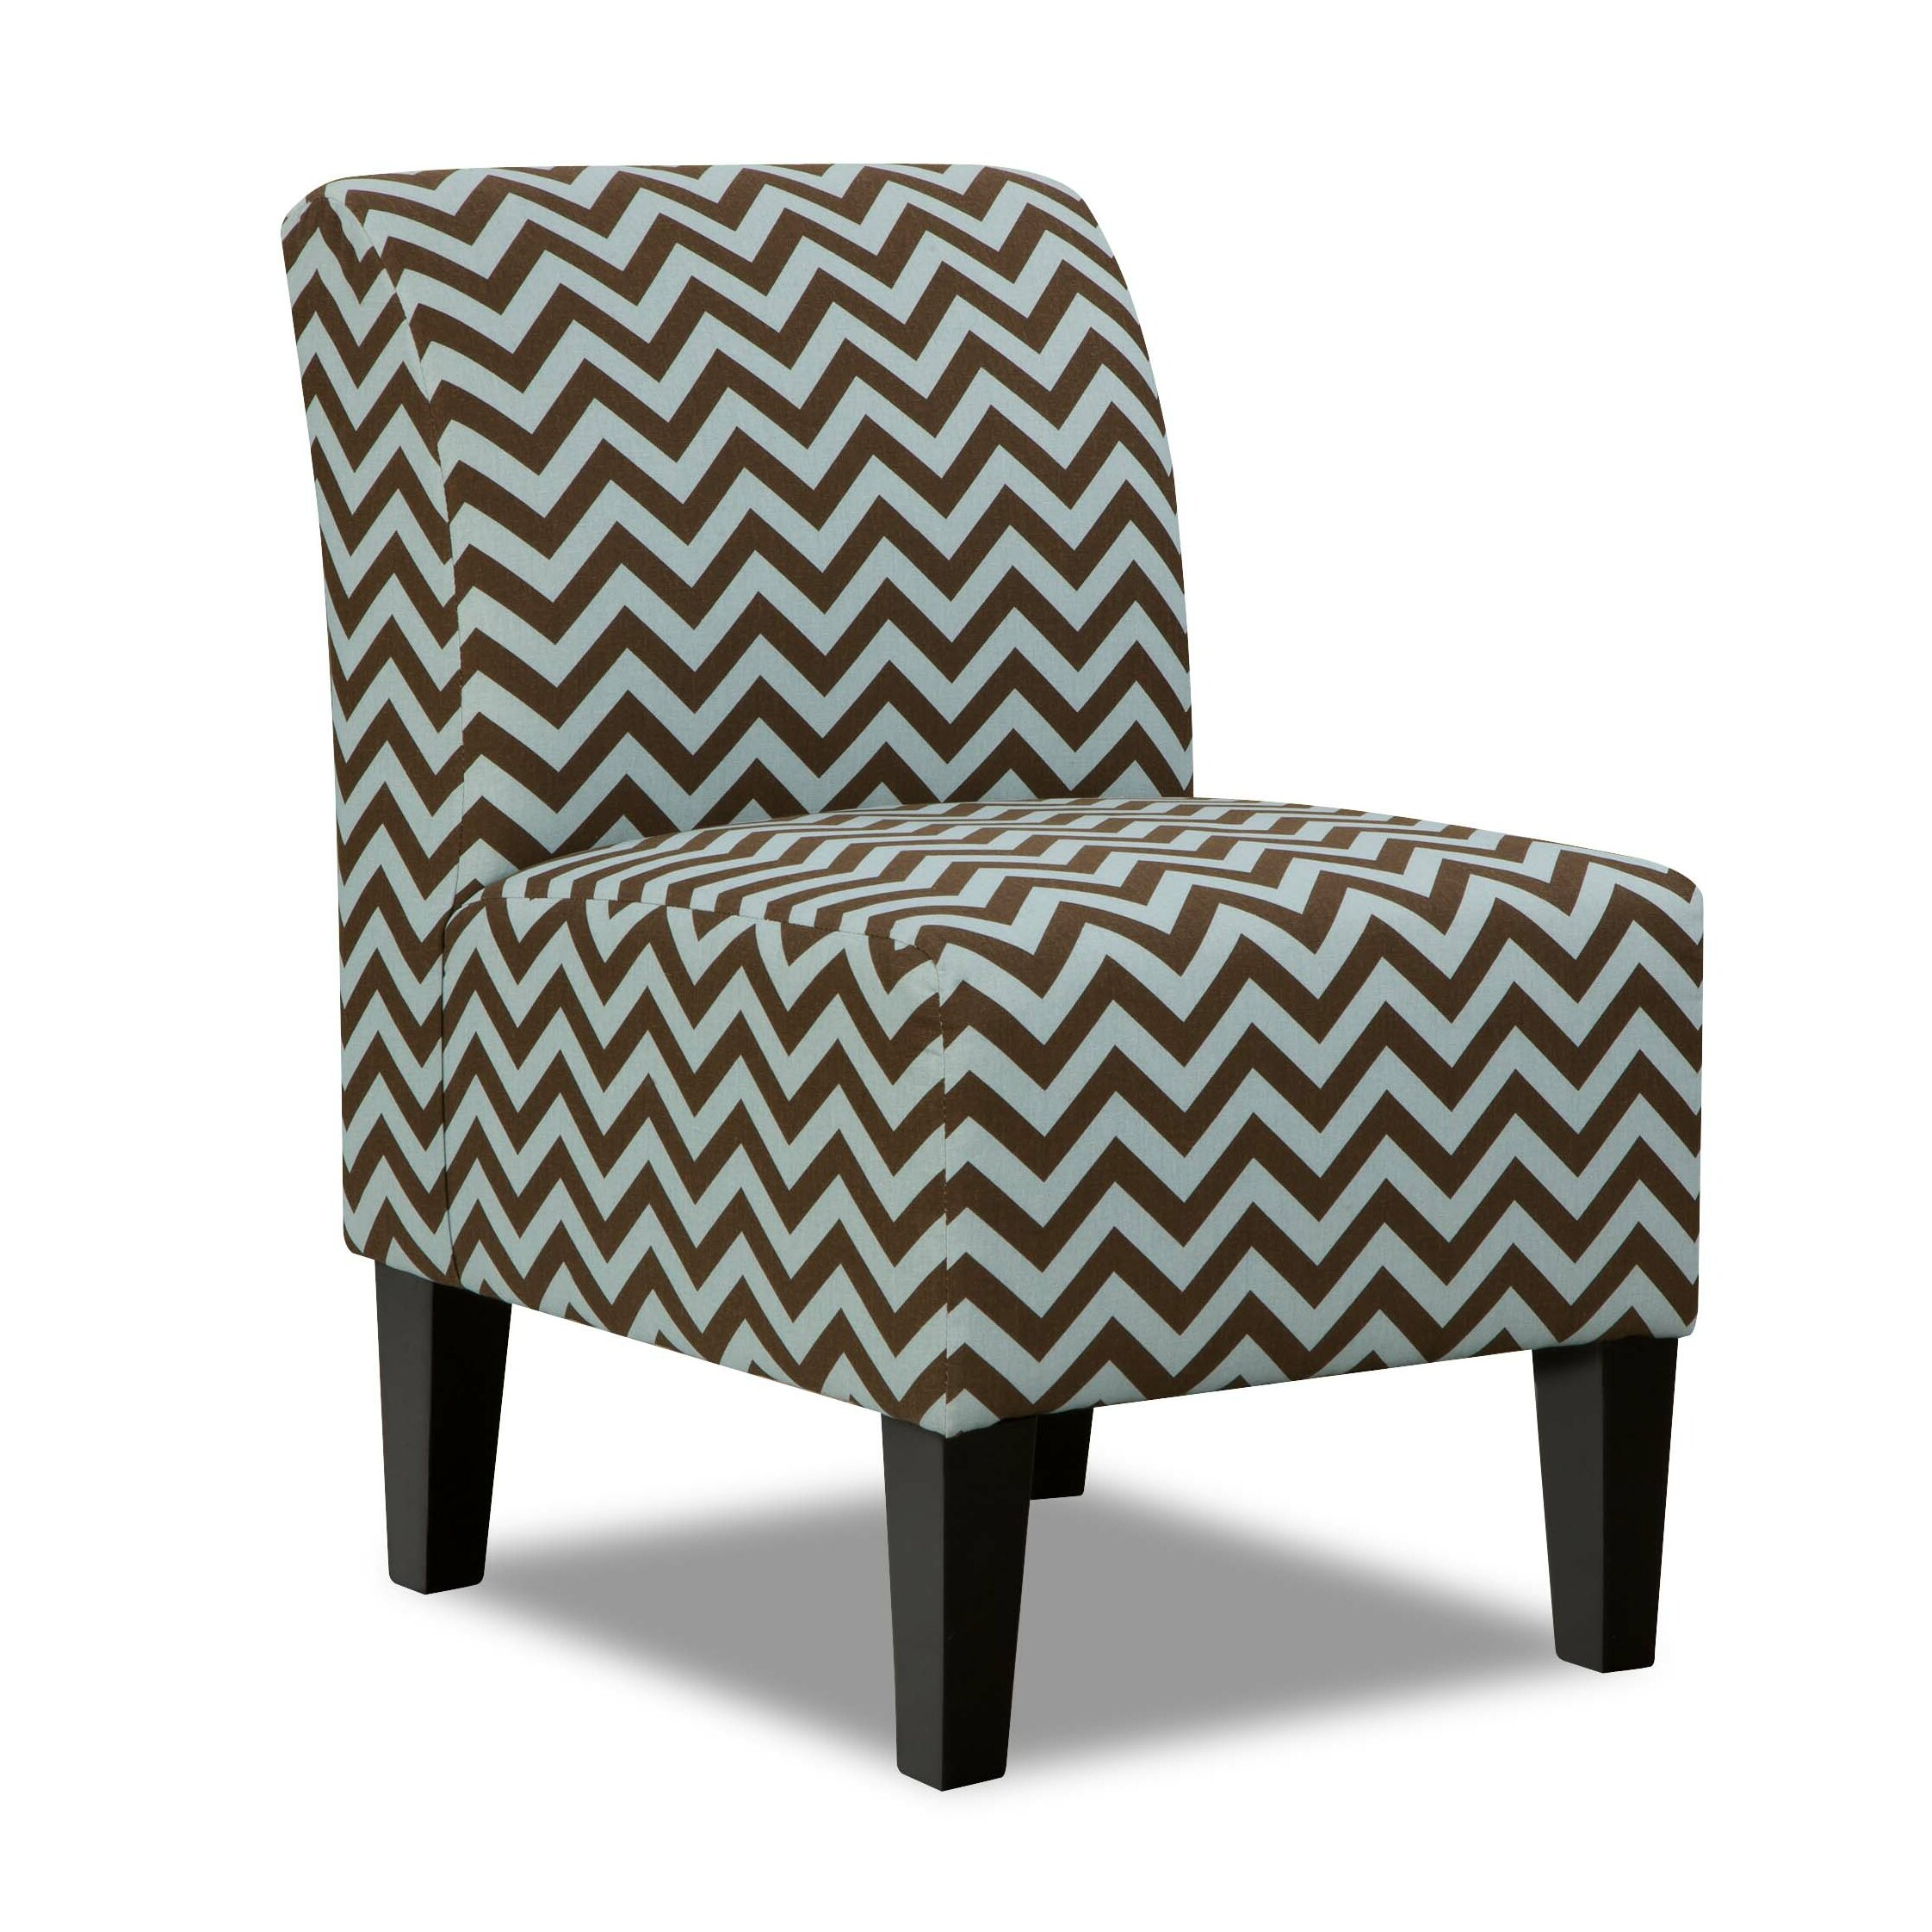 Srmless Accent Chair Covers: Armless Chair